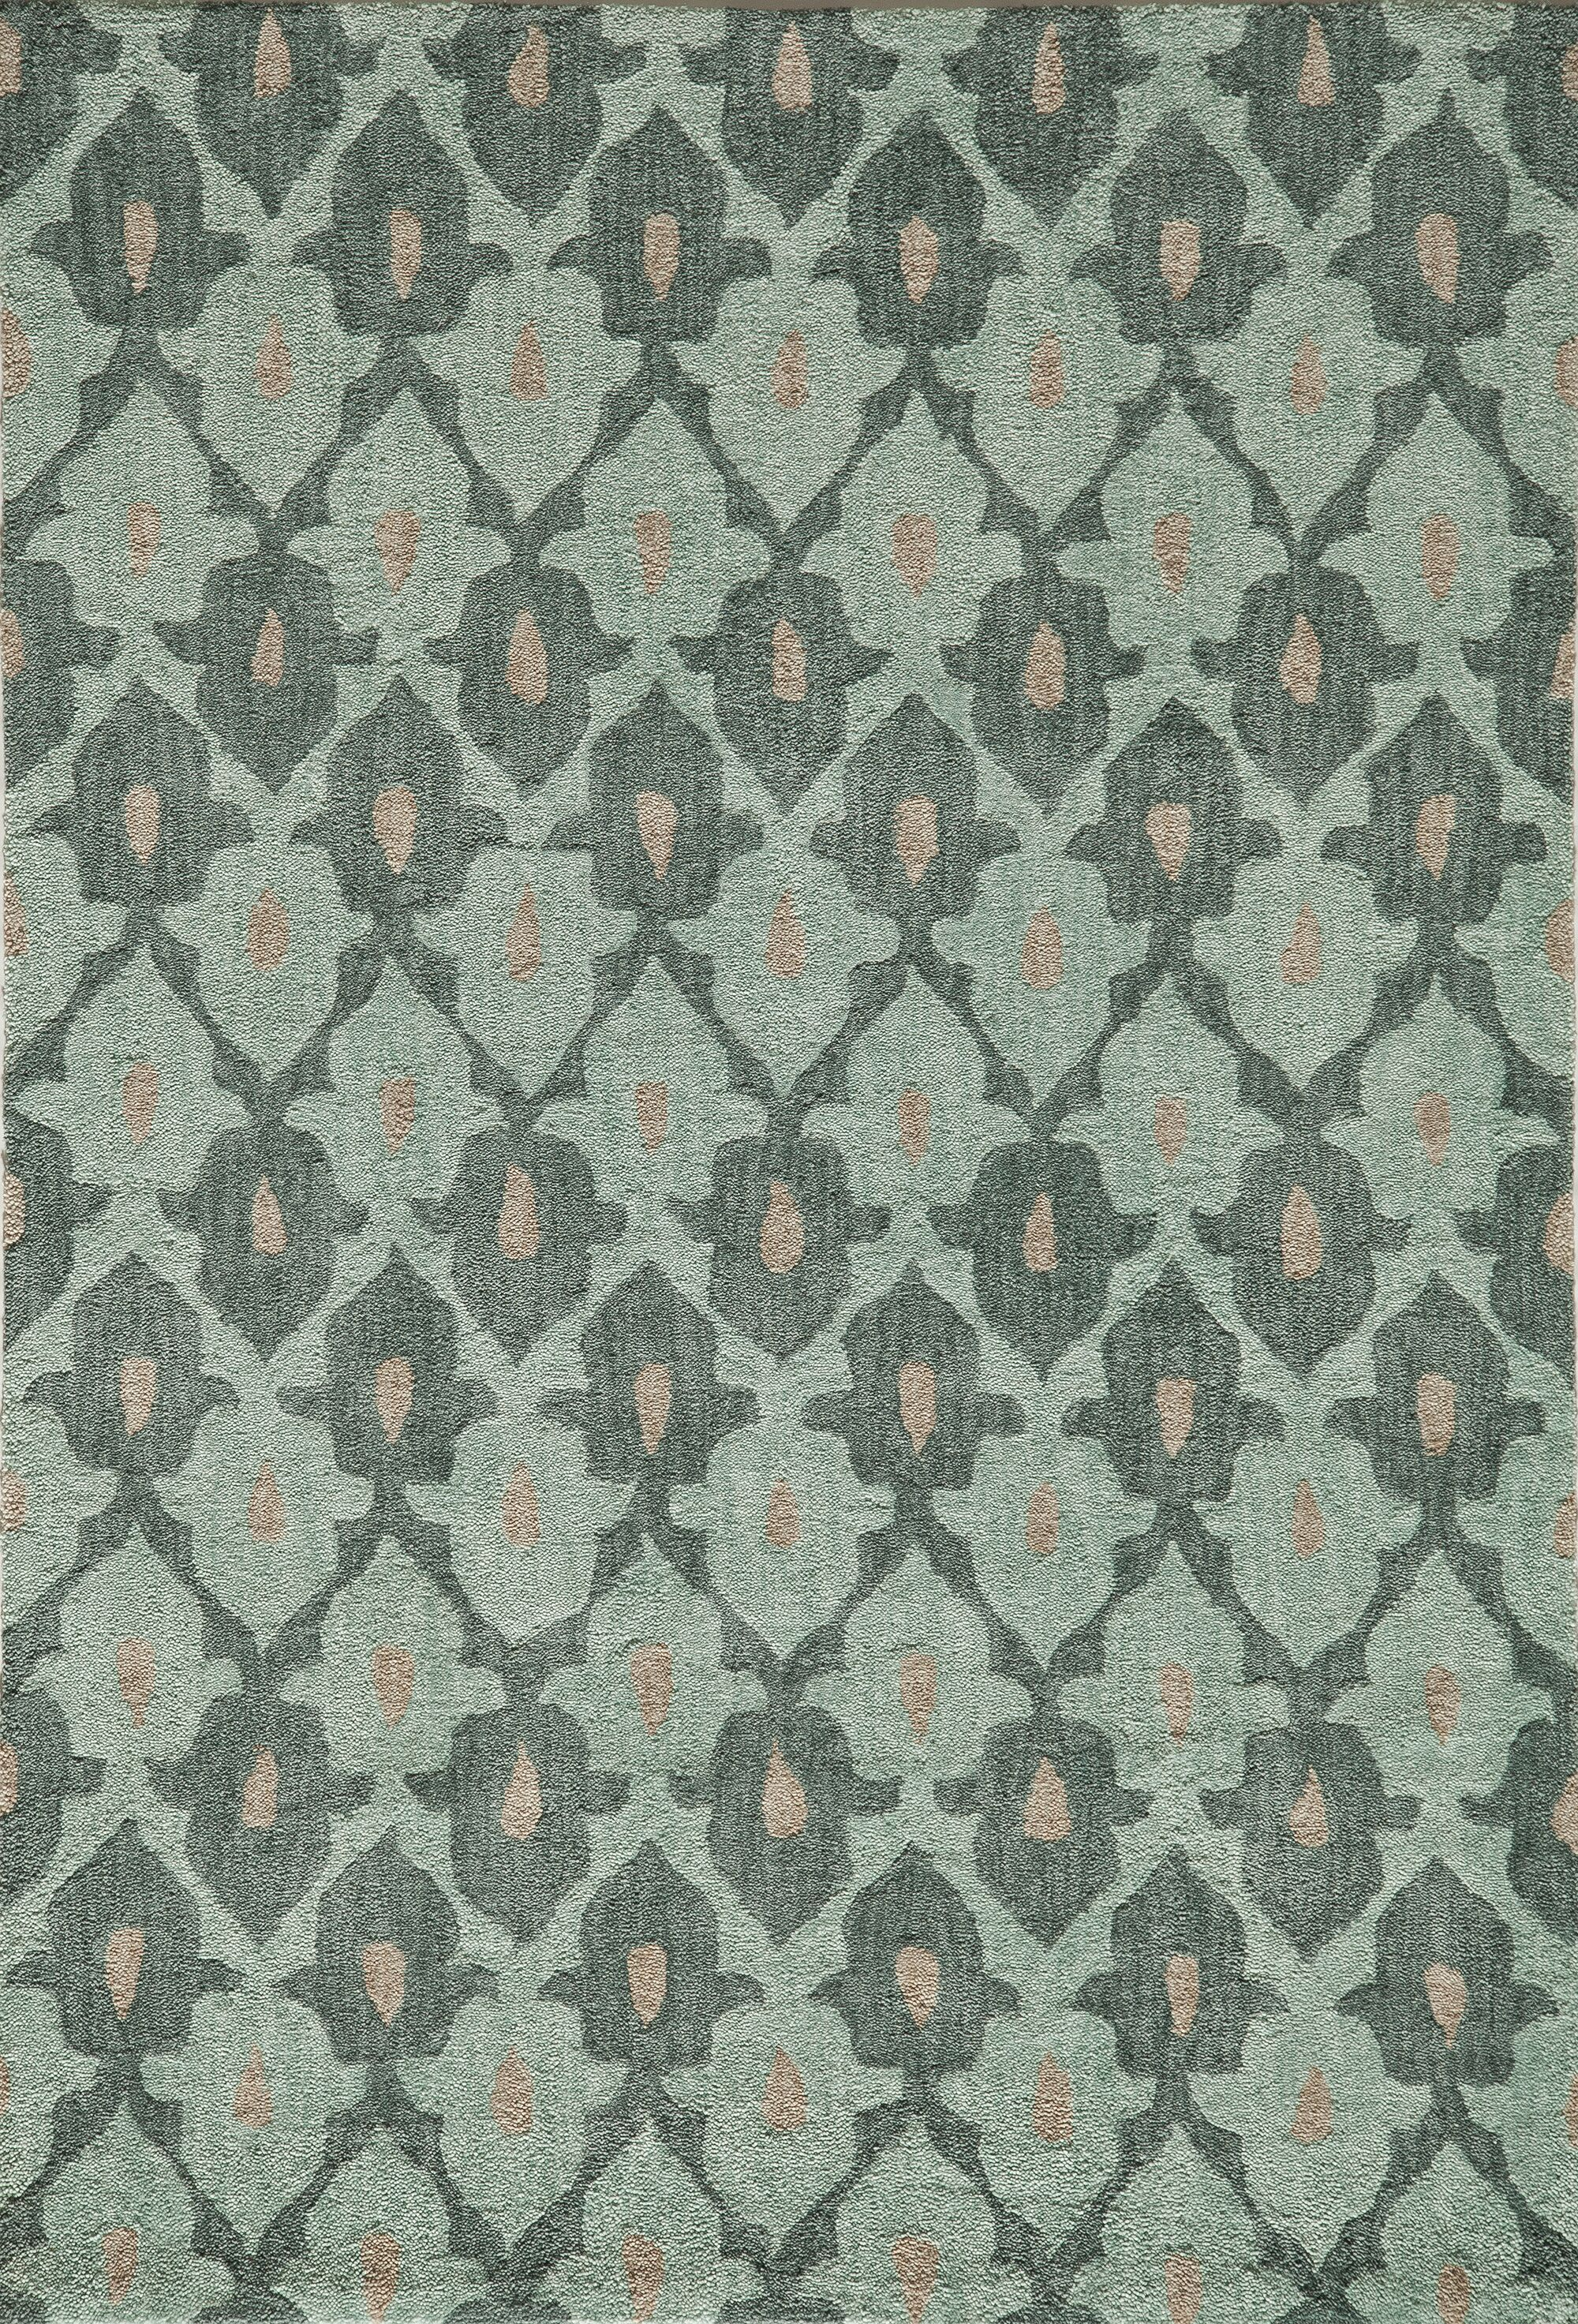 Allen Hand-Tufted Teal Area Rug Rug Size: Rectangle 5' x 7'6